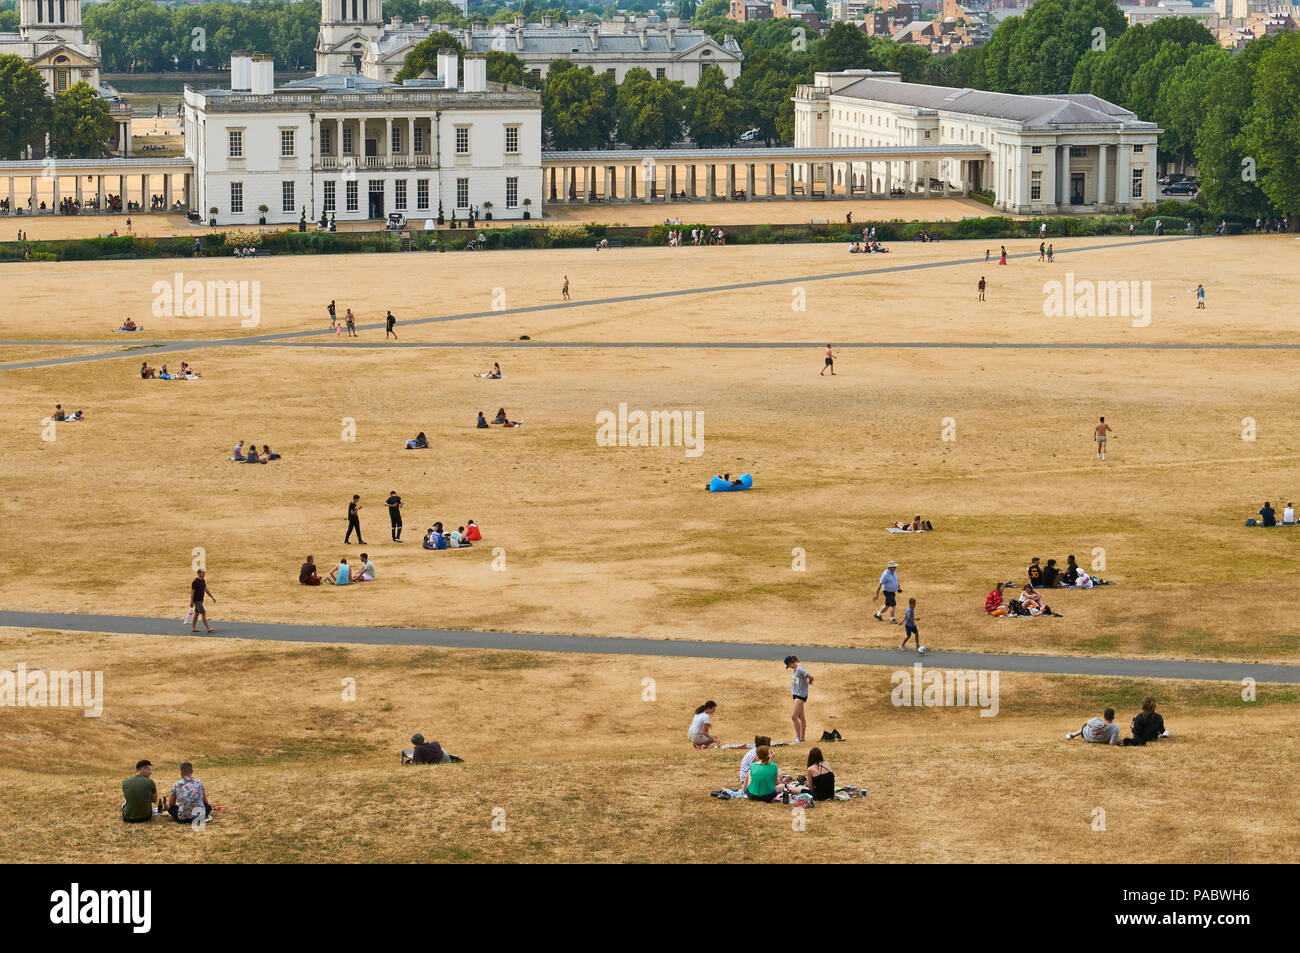 Greenwich Park, South East London, UK, in the summer heatwave of 2018, with parched grass and crowds - Stock Image